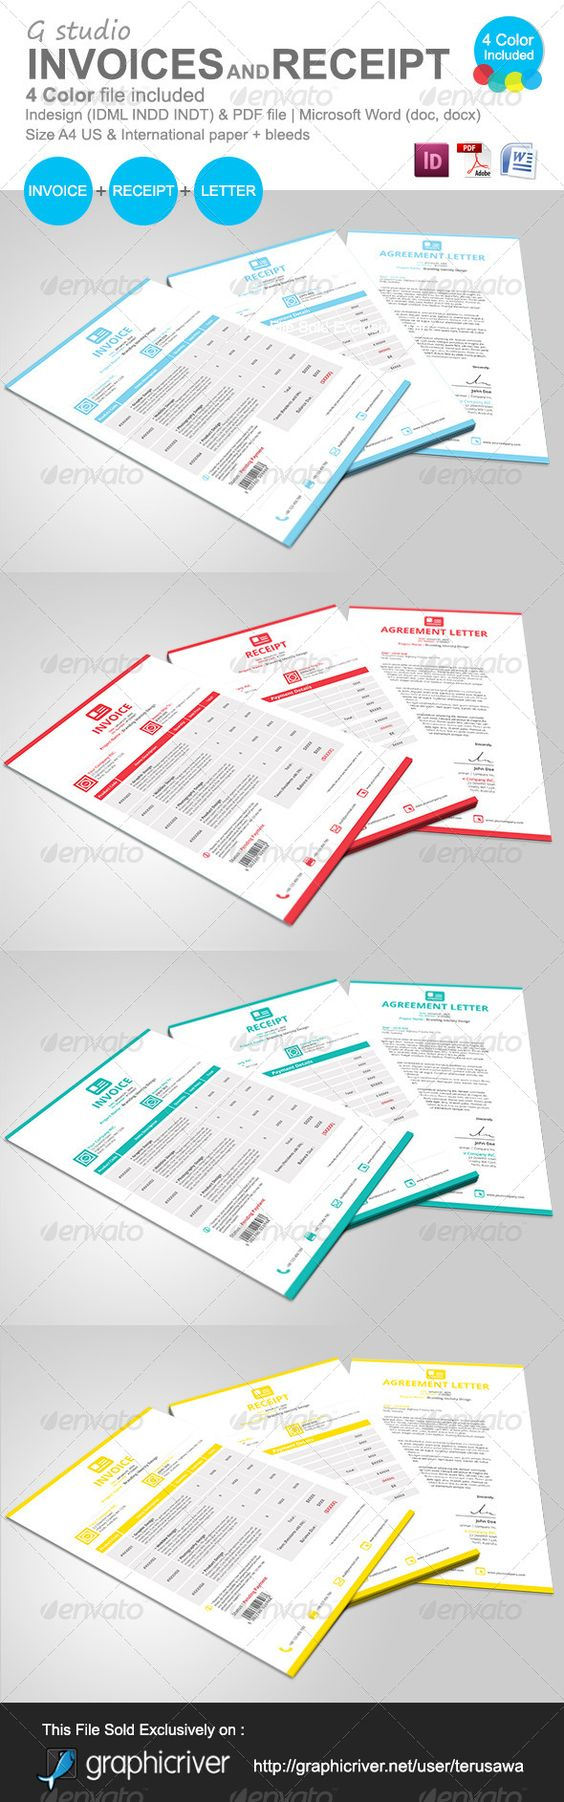 gstudio invoices and receipt template words fonts and invoice gstudio invoices and receipt template